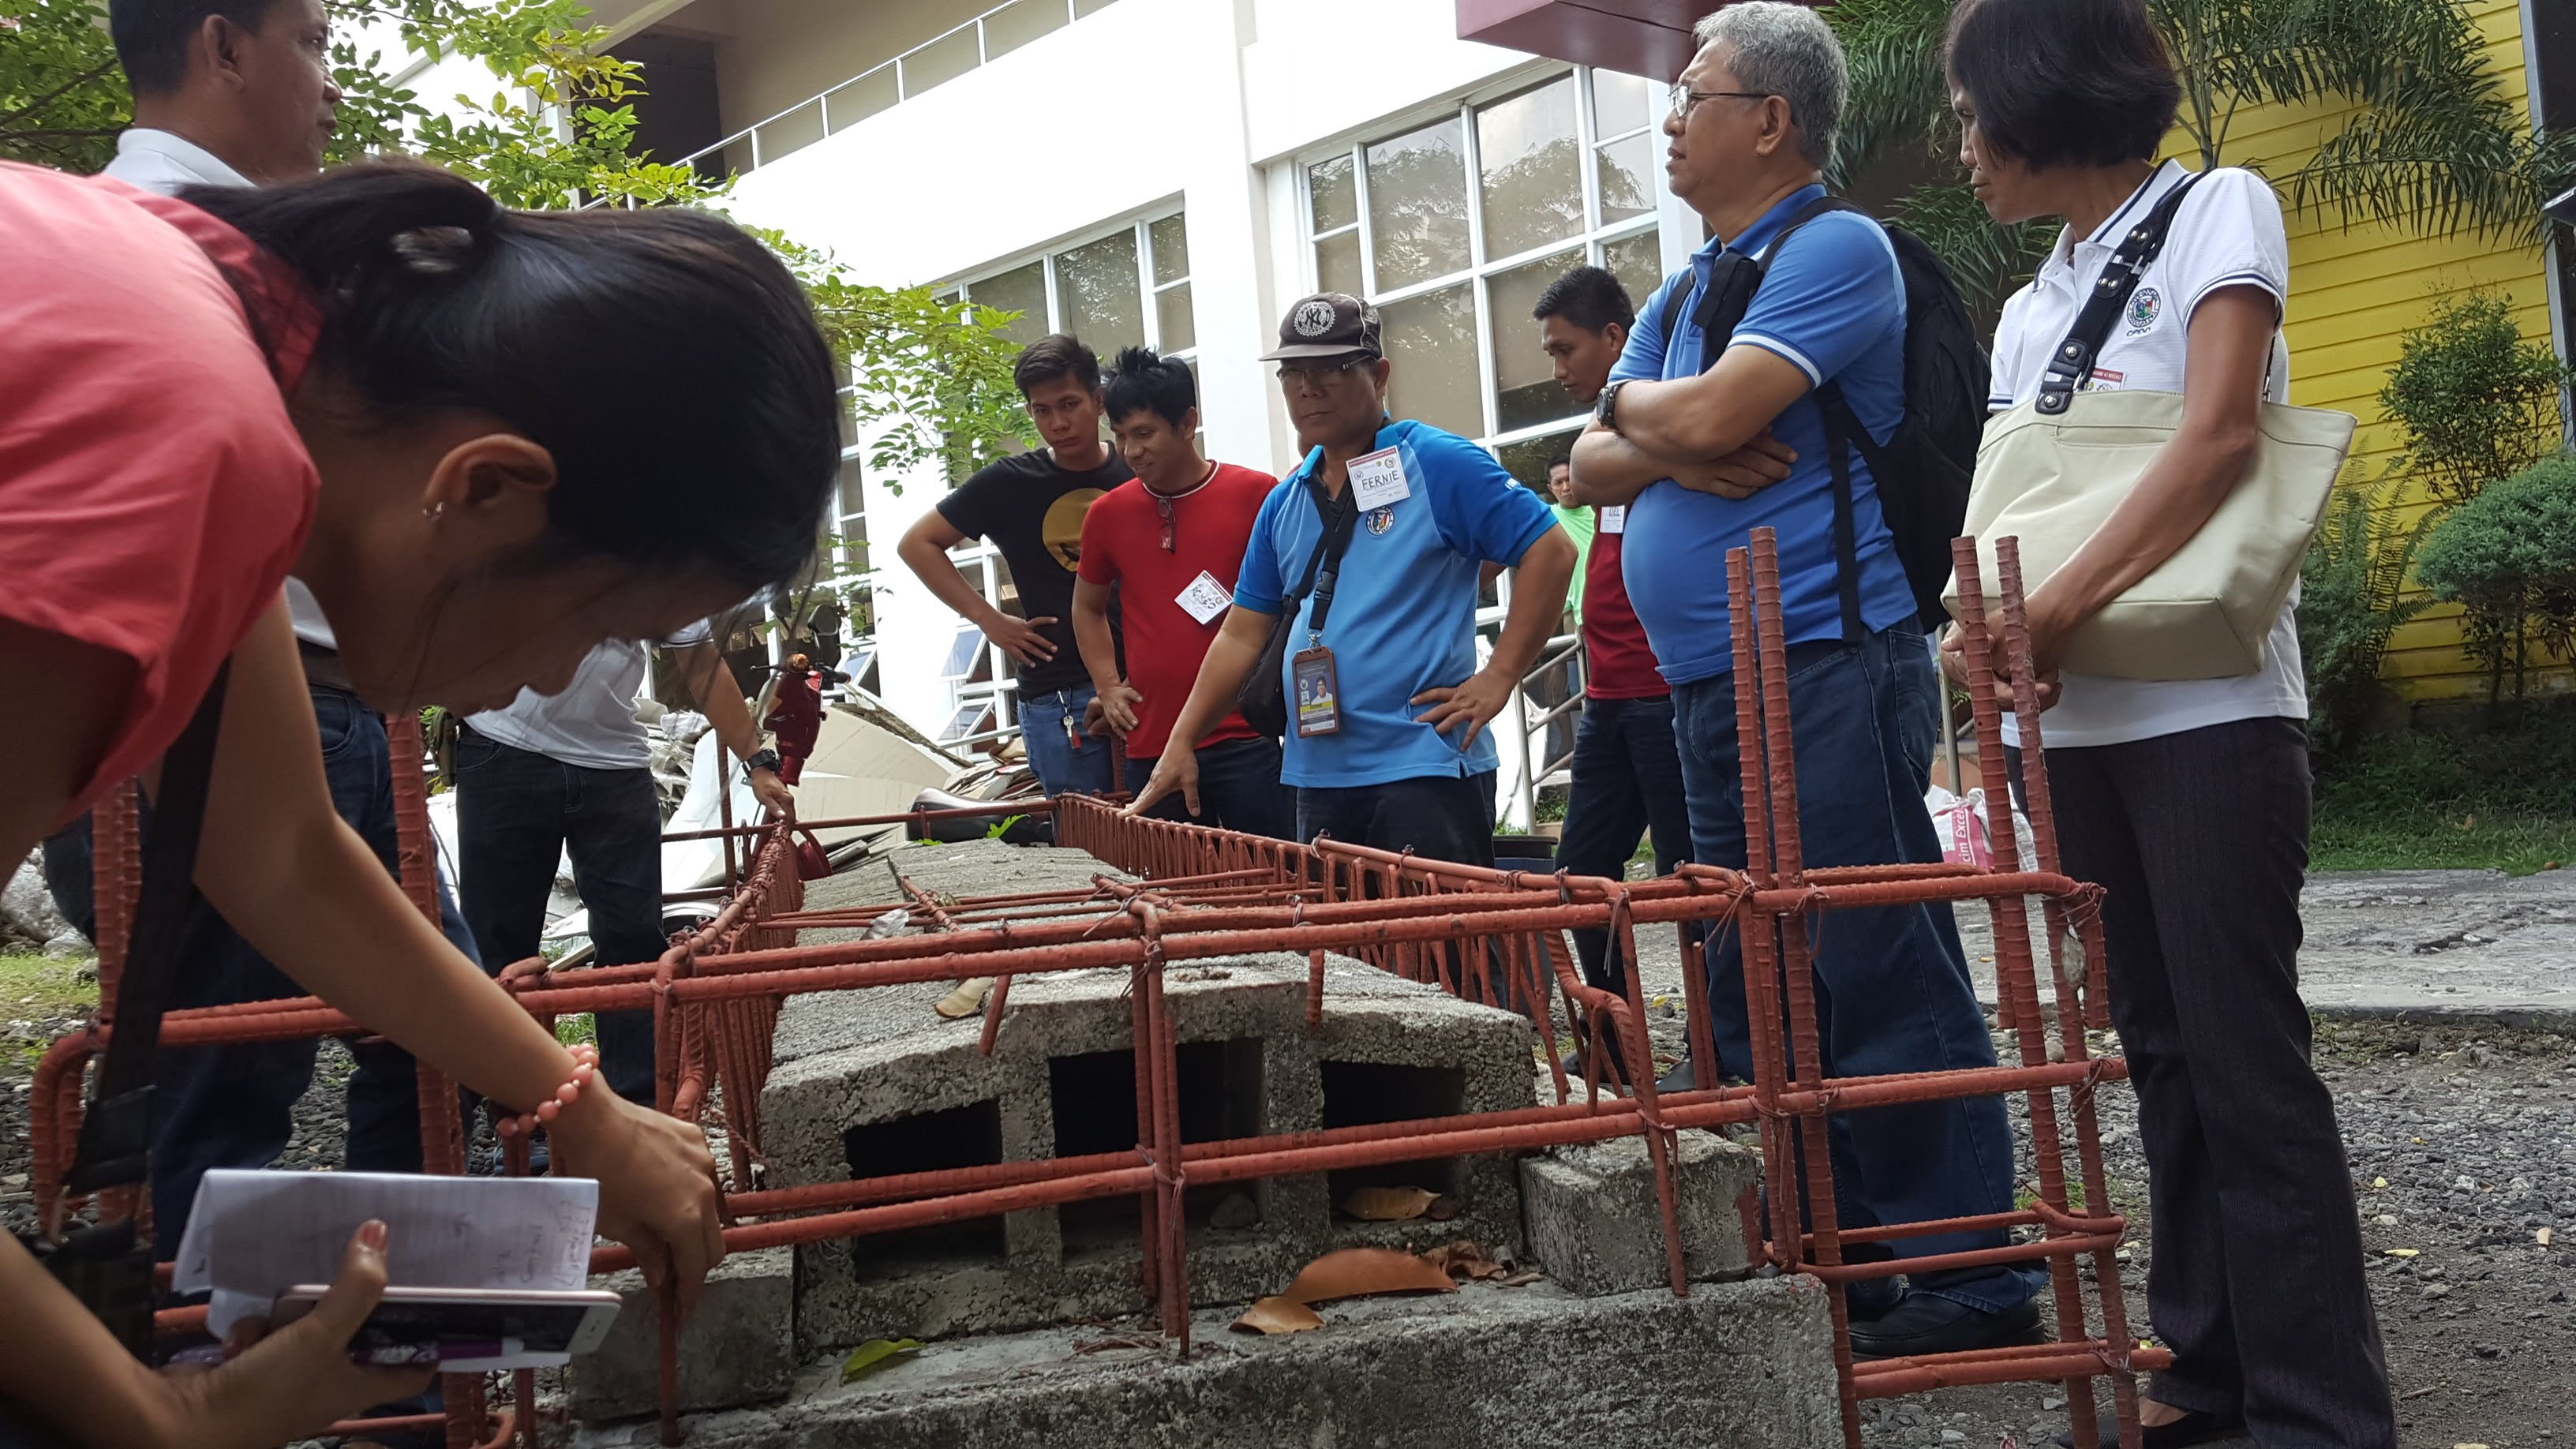 The participants also had the opportunity to observe and test the strength of the assembled beam of slab blocks.